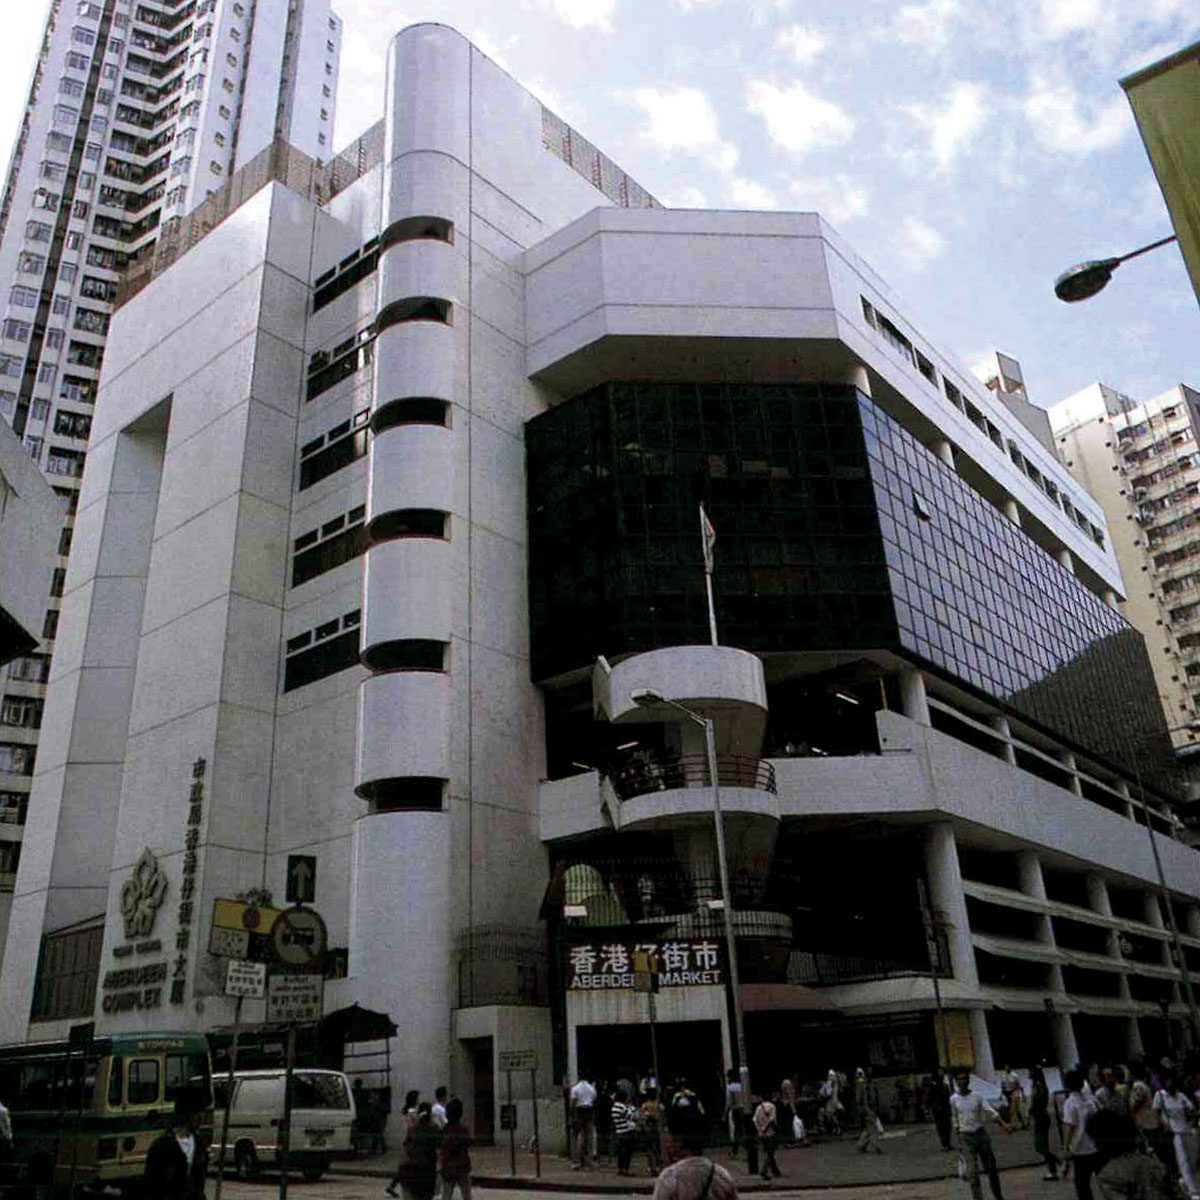 Aberdeen Municipal Services Building at 203 Aberdeen Main Road, Hong Kong